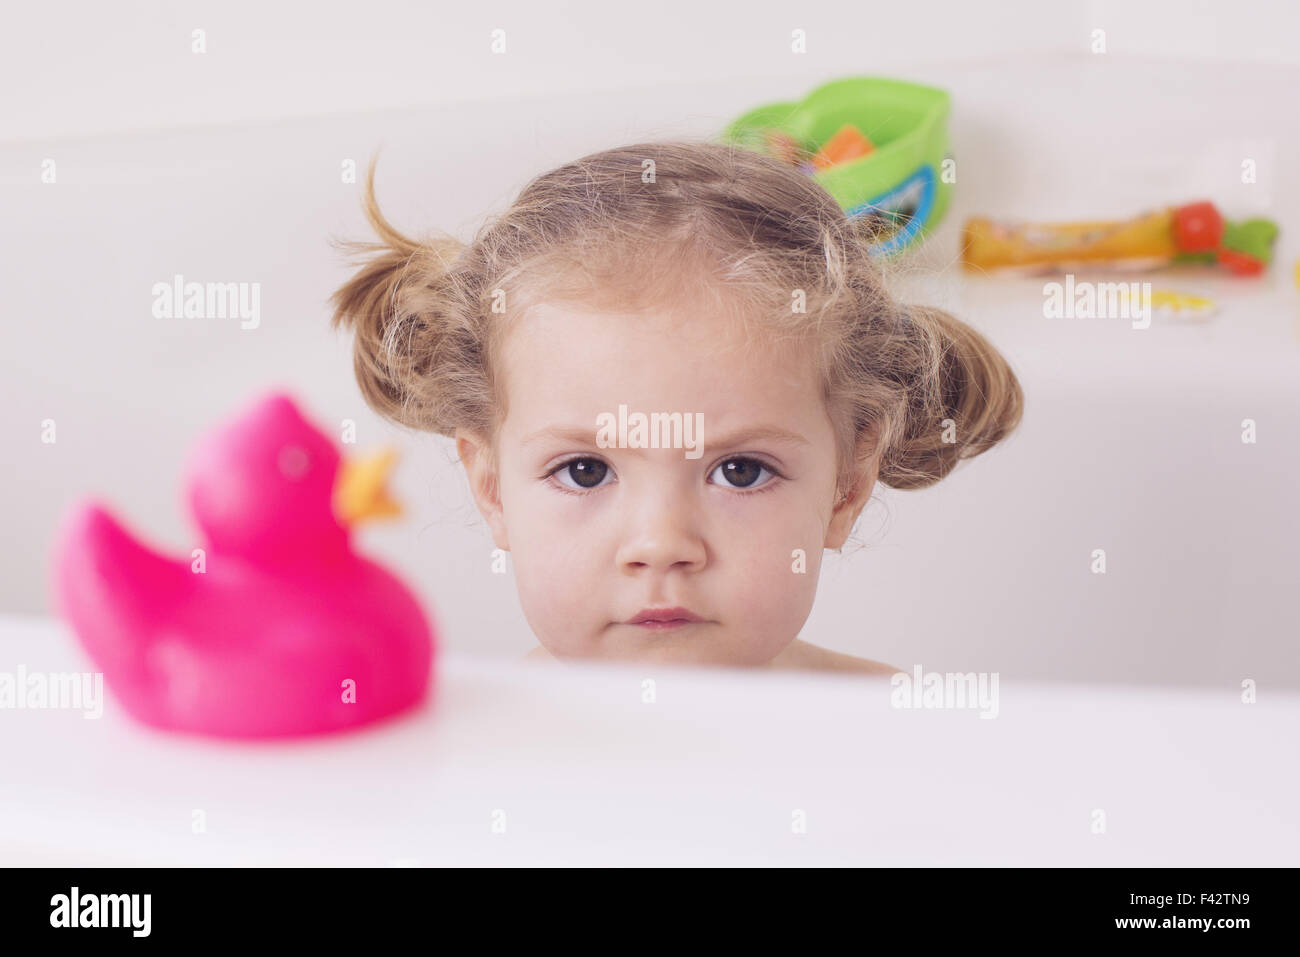 Little girl sitting in bath with unhappy expression, portrait - Stock Image